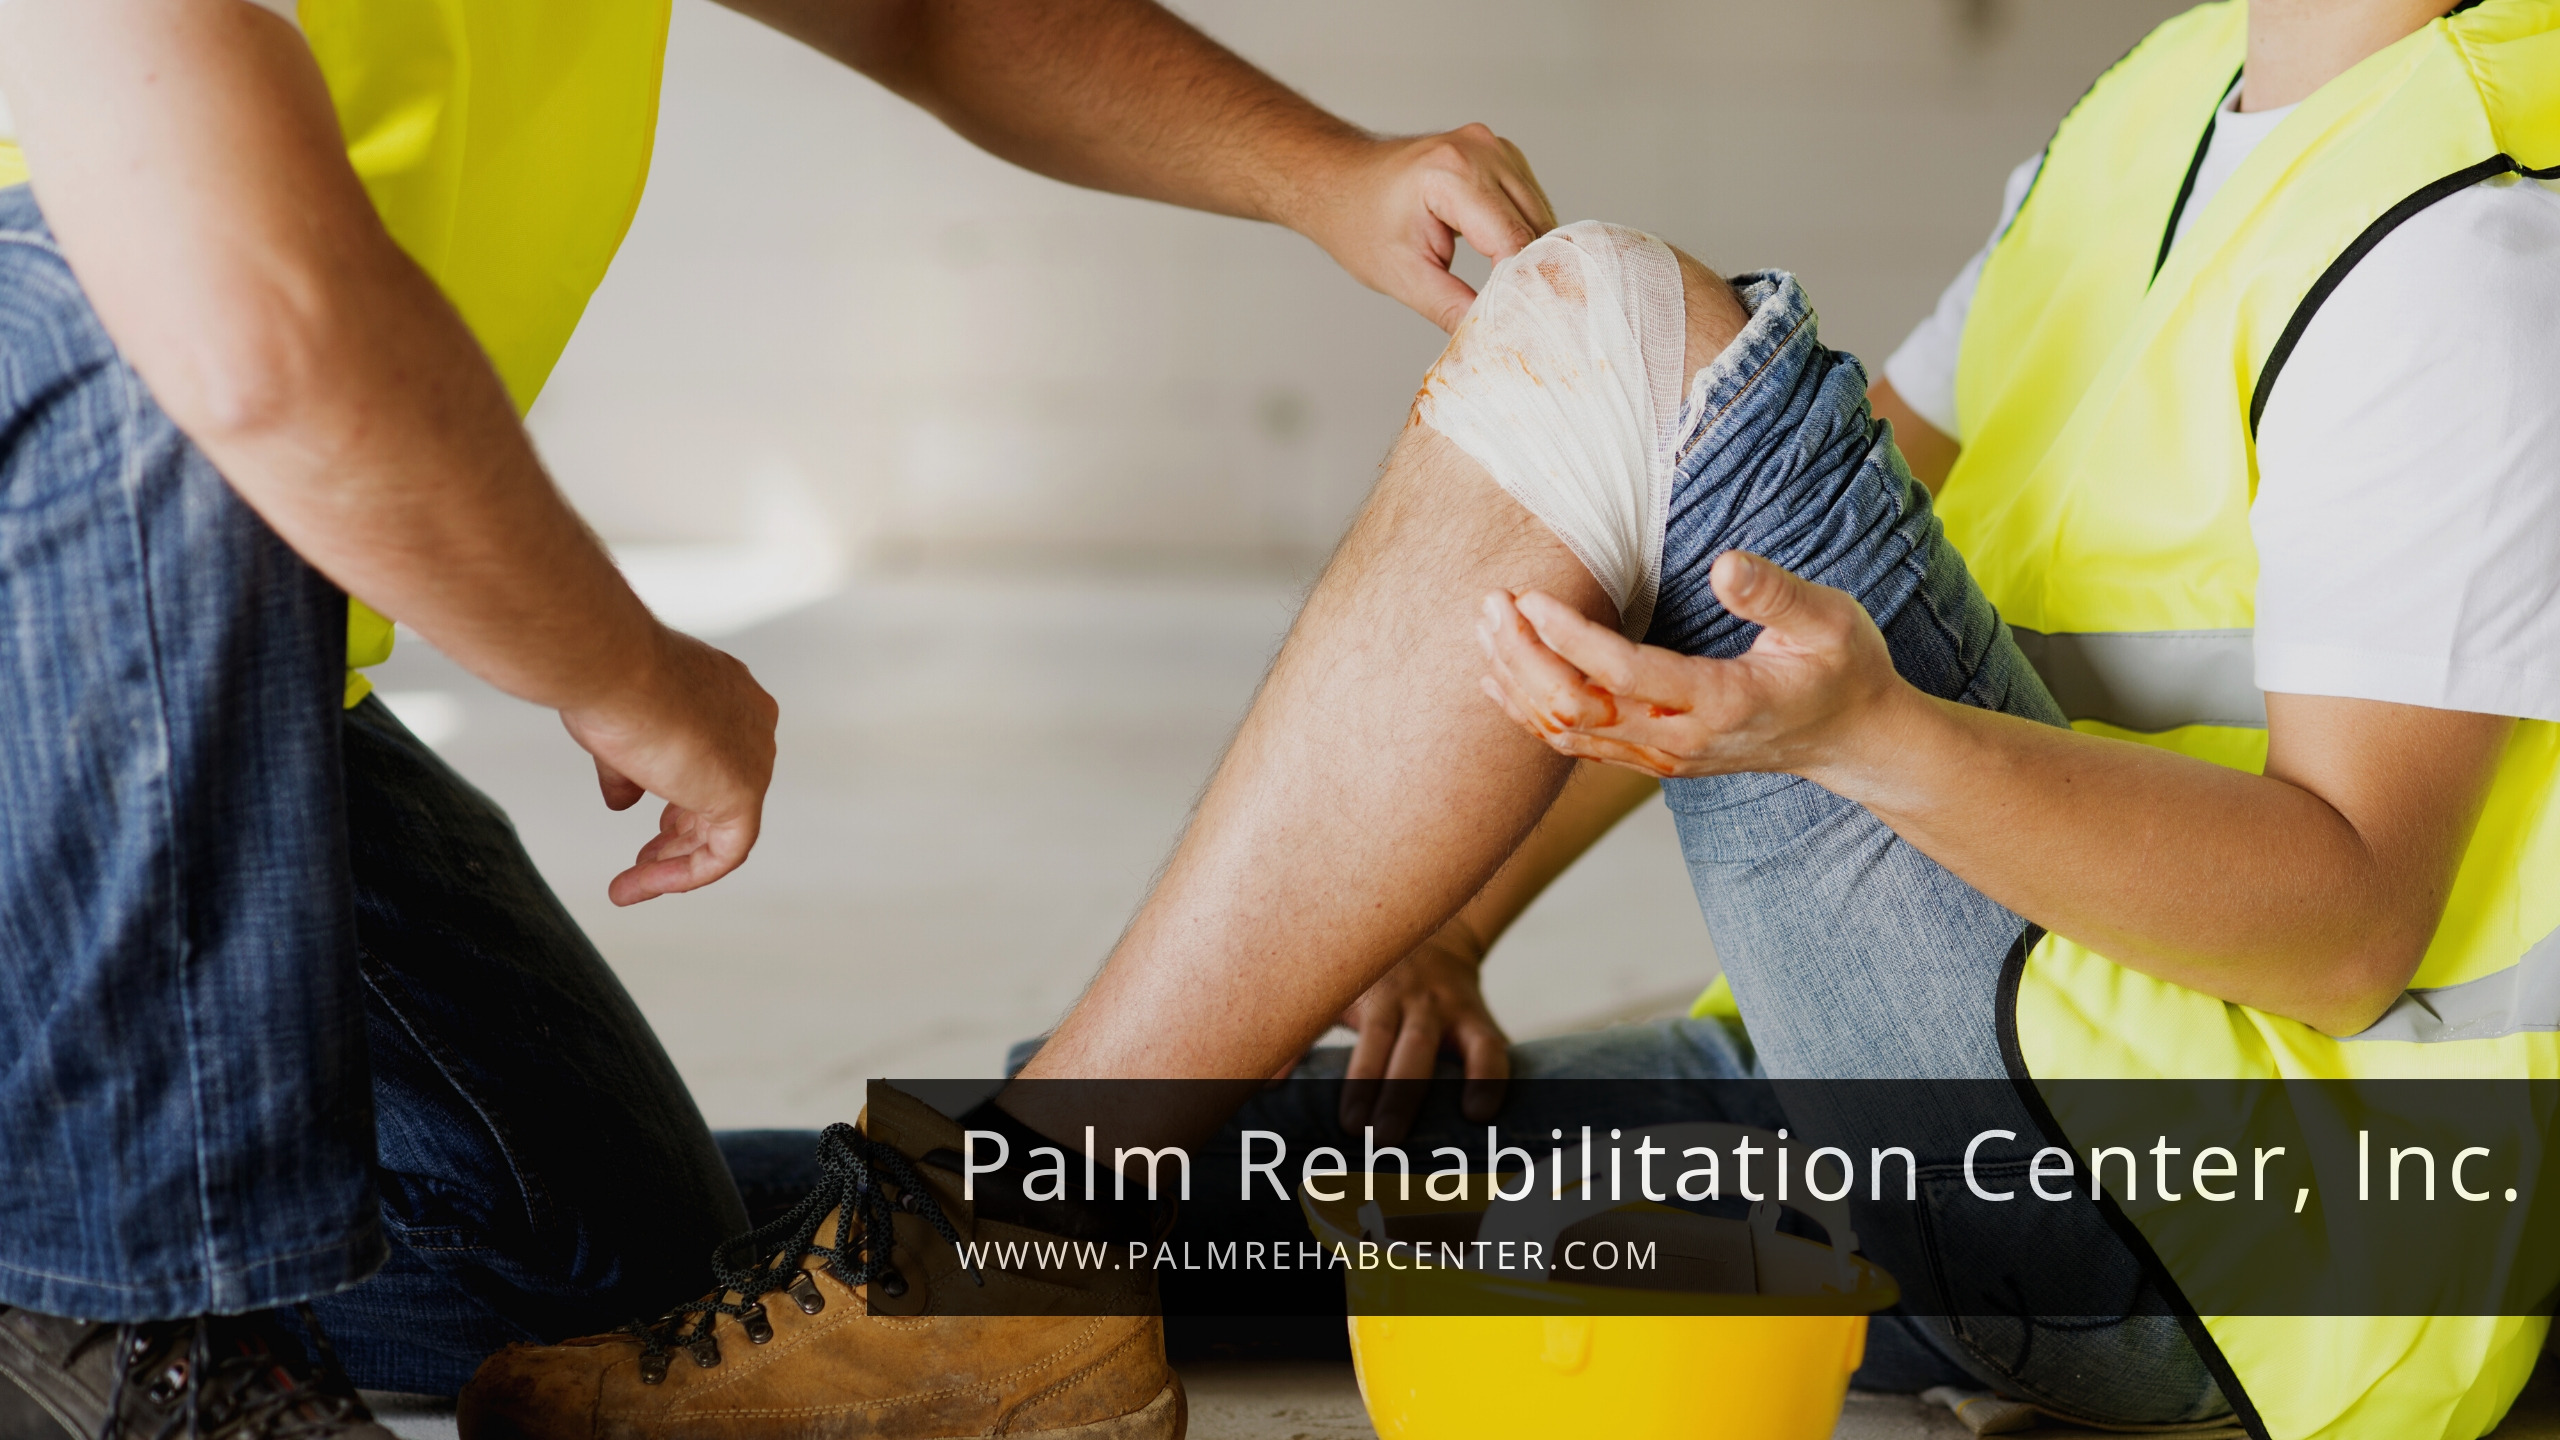 Work Injury Rehabilitation / Physical therapy